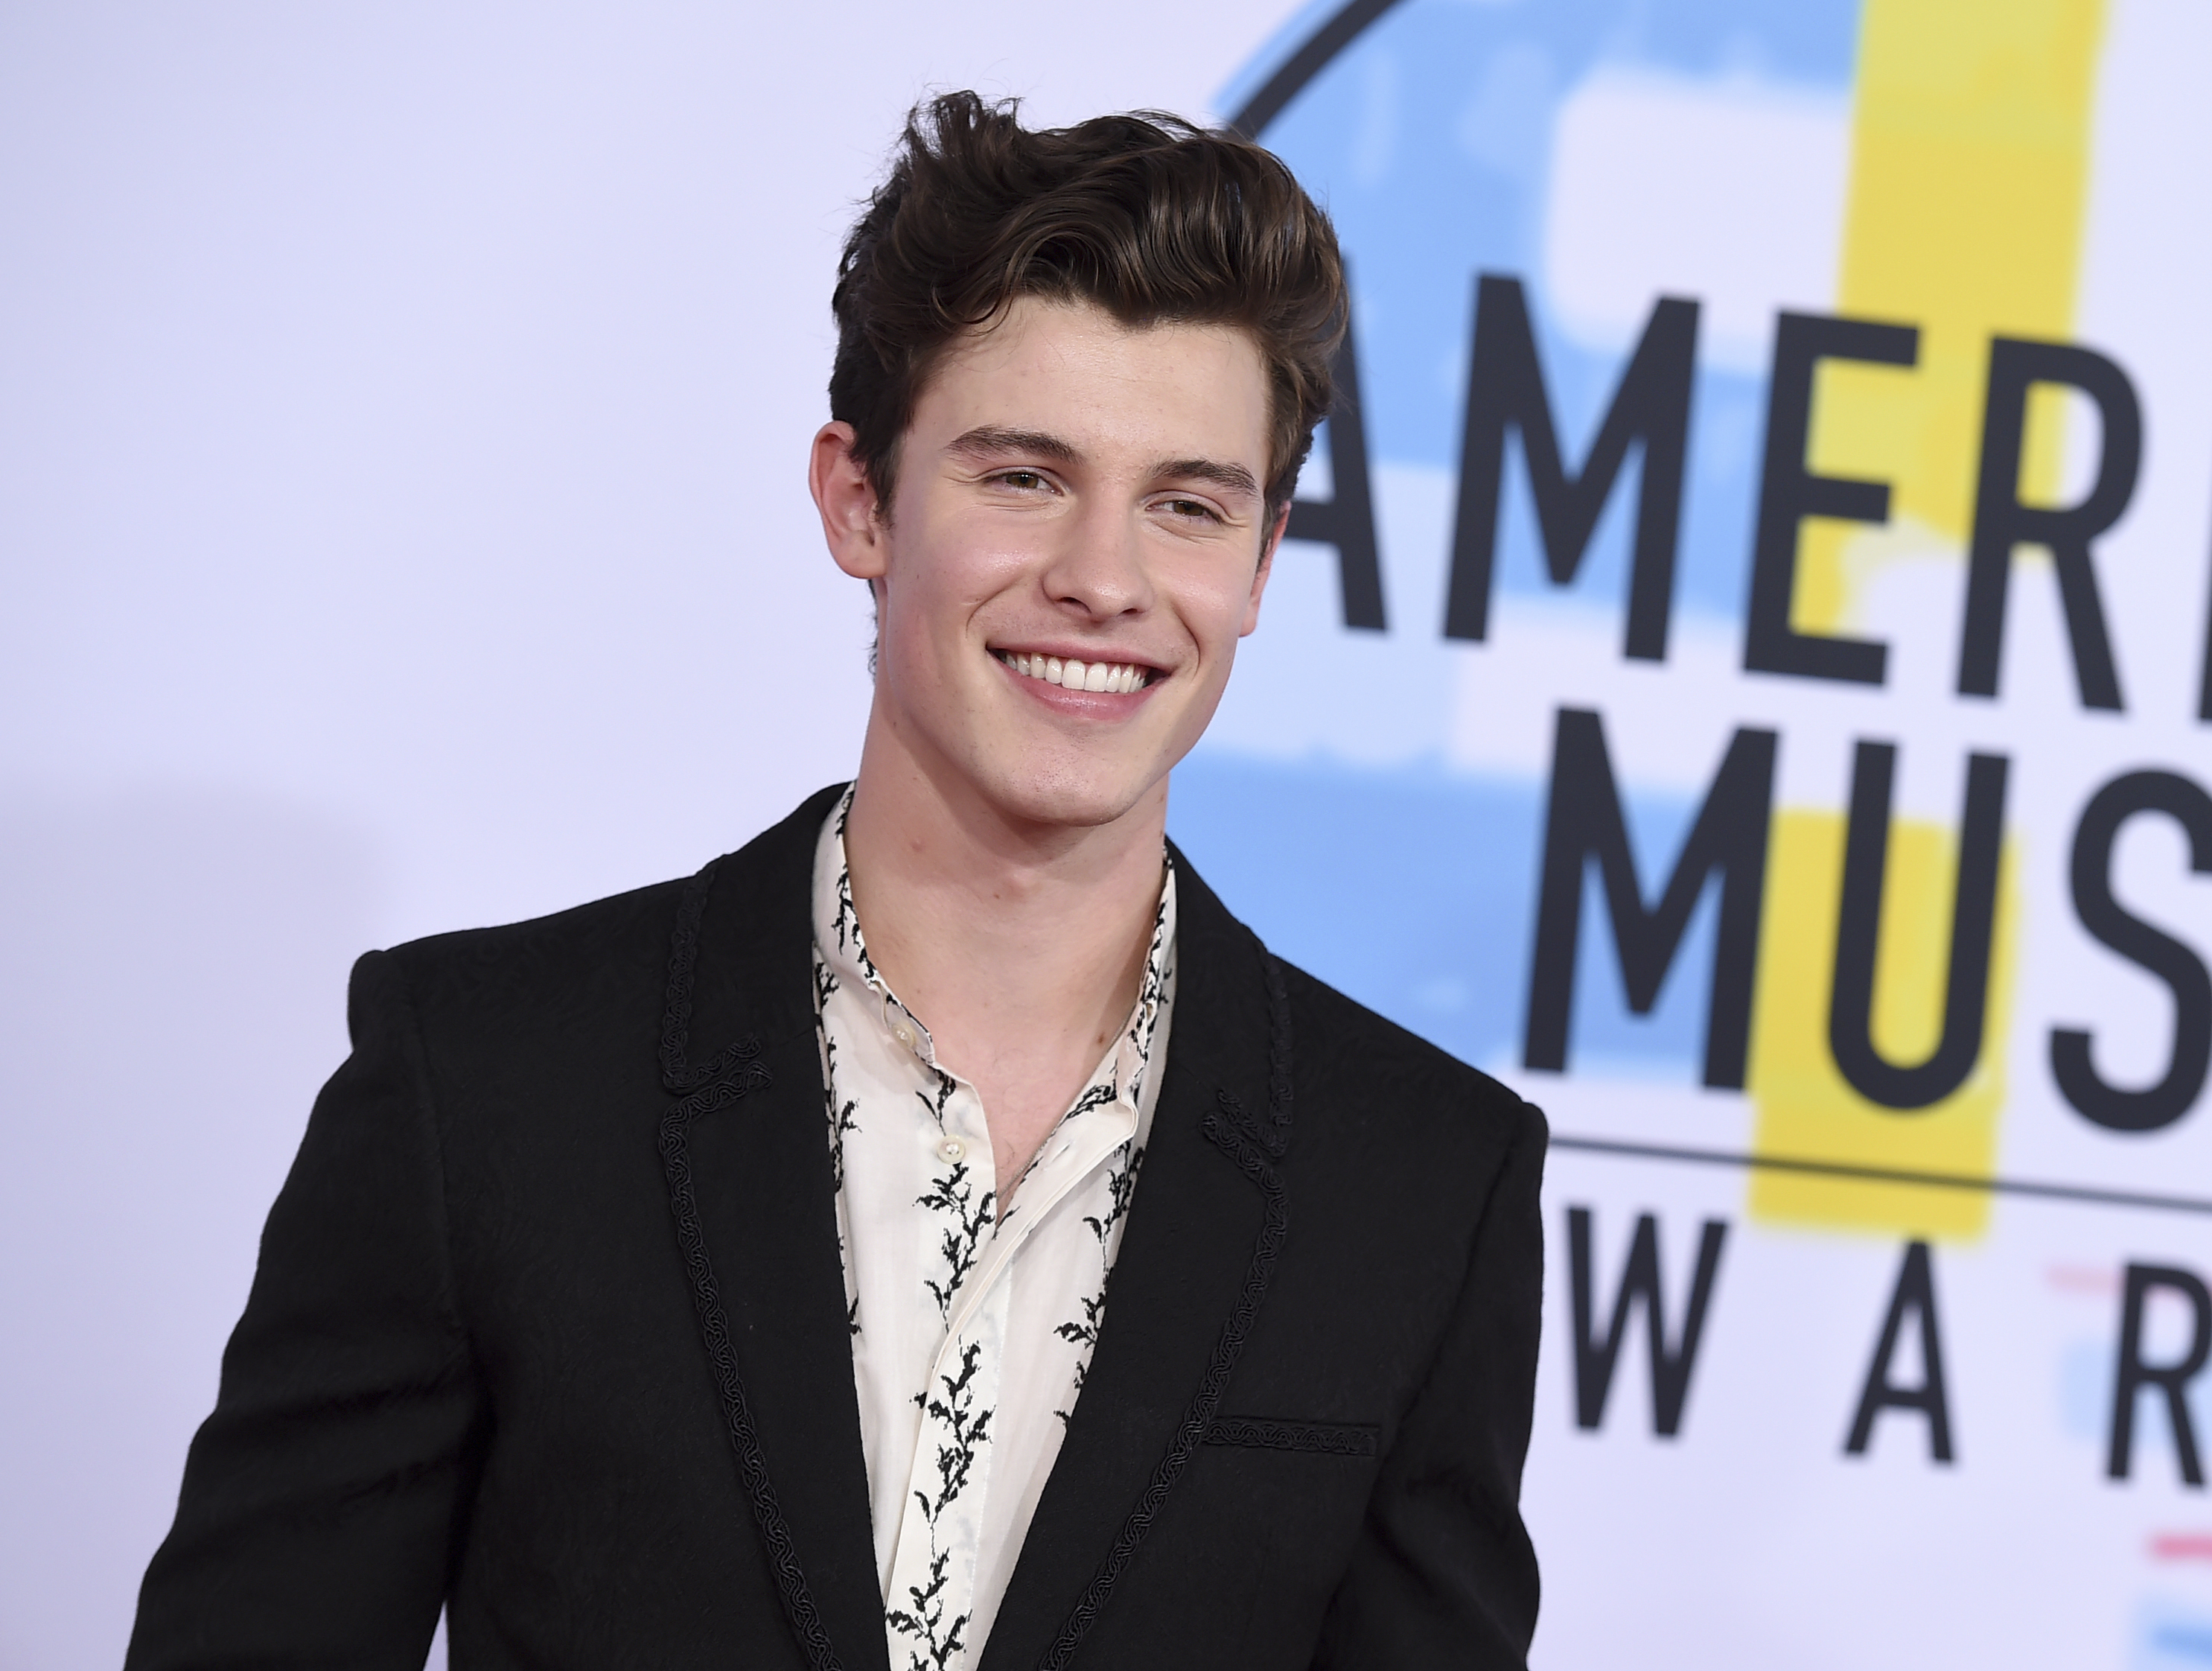 "<div class=""meta image-caption""><div class=""origin-logo origin-image none""><span>none</span></div><span class=""caption-text"">Shawn Mendes arrives at the American Music Awards on Tuesday, Oct. 9, 2018, at the Microsoft Theater in Los Angeles. (Jordan Strauss/Invision/AP)</span></div>"